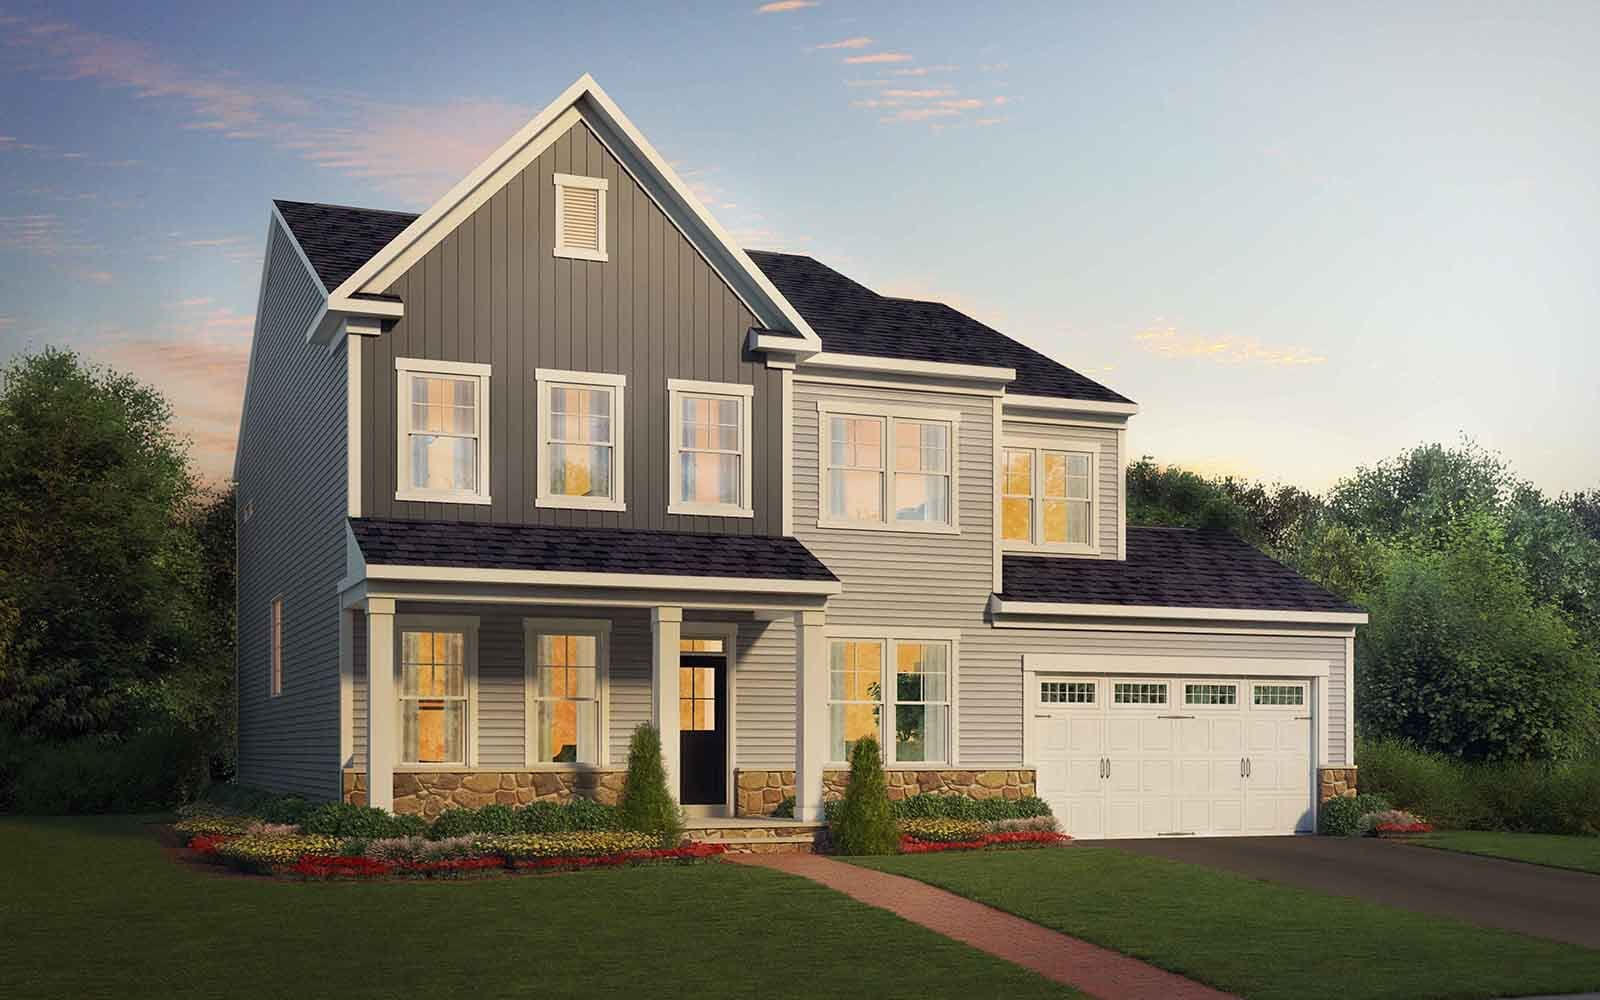 Exterior:Elevation 5 of the Kensington a single family home design by Brookfield Residential at Waterford Manor